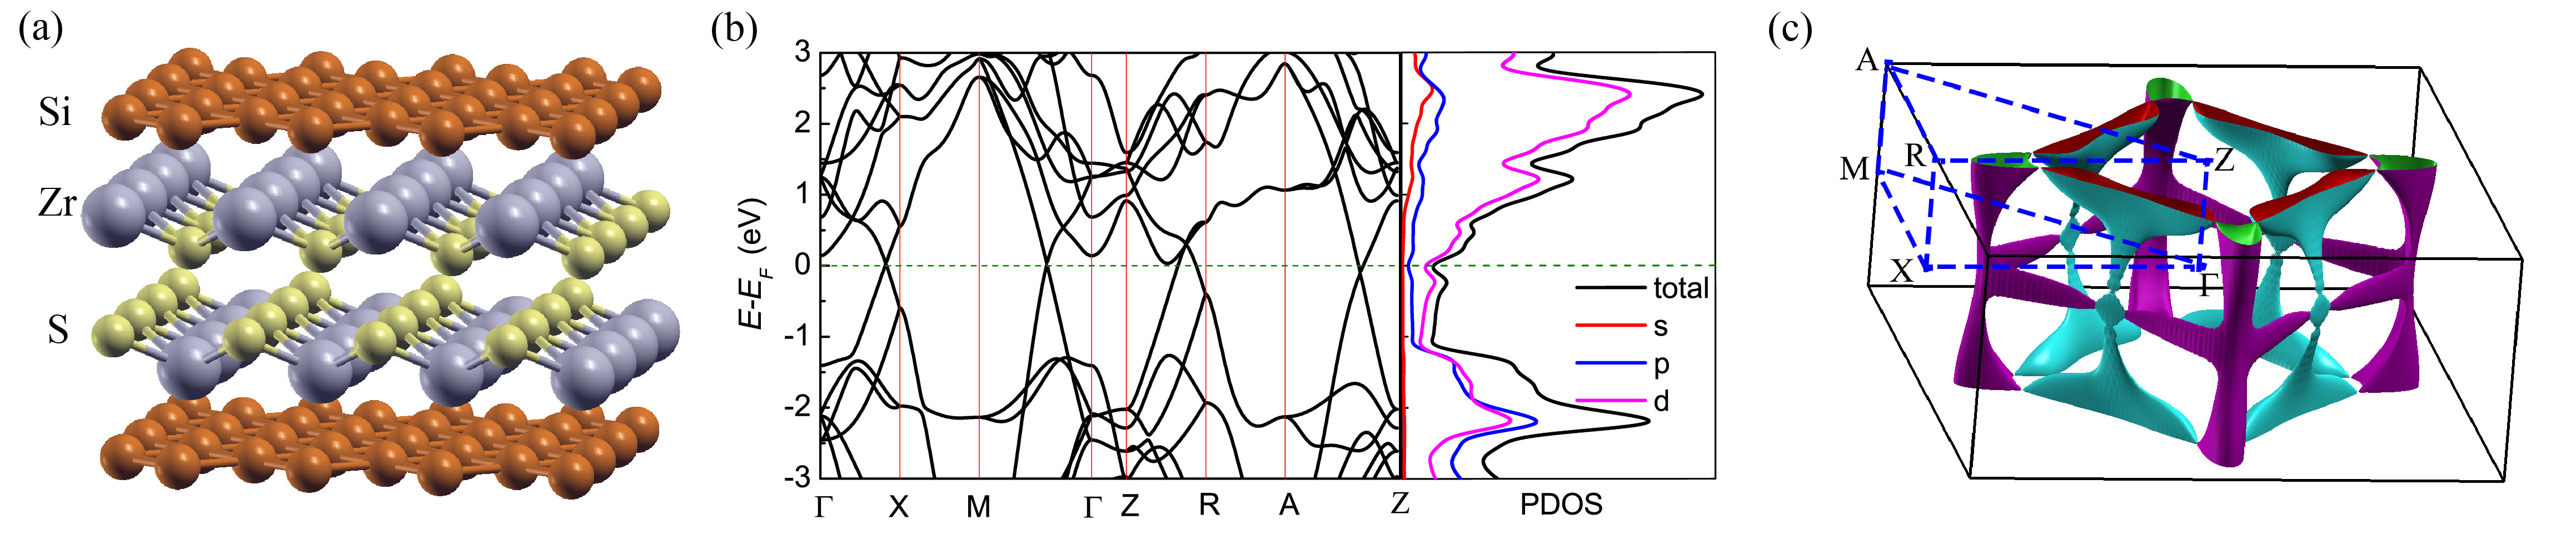 (a) Schematic representation of the ZrSiS crystal structure; (b) Calculated band structure and orbital-resolved density of states in the vicinity of the Fermi energy; (c) Three-dimensional view of the Fermi surface with purple and cyan colors denoting valence and conduction states, respectively. Black lines mark the Brillouin zone boundaries. Dashes blue lines connect the high-symmetry points used in (b).